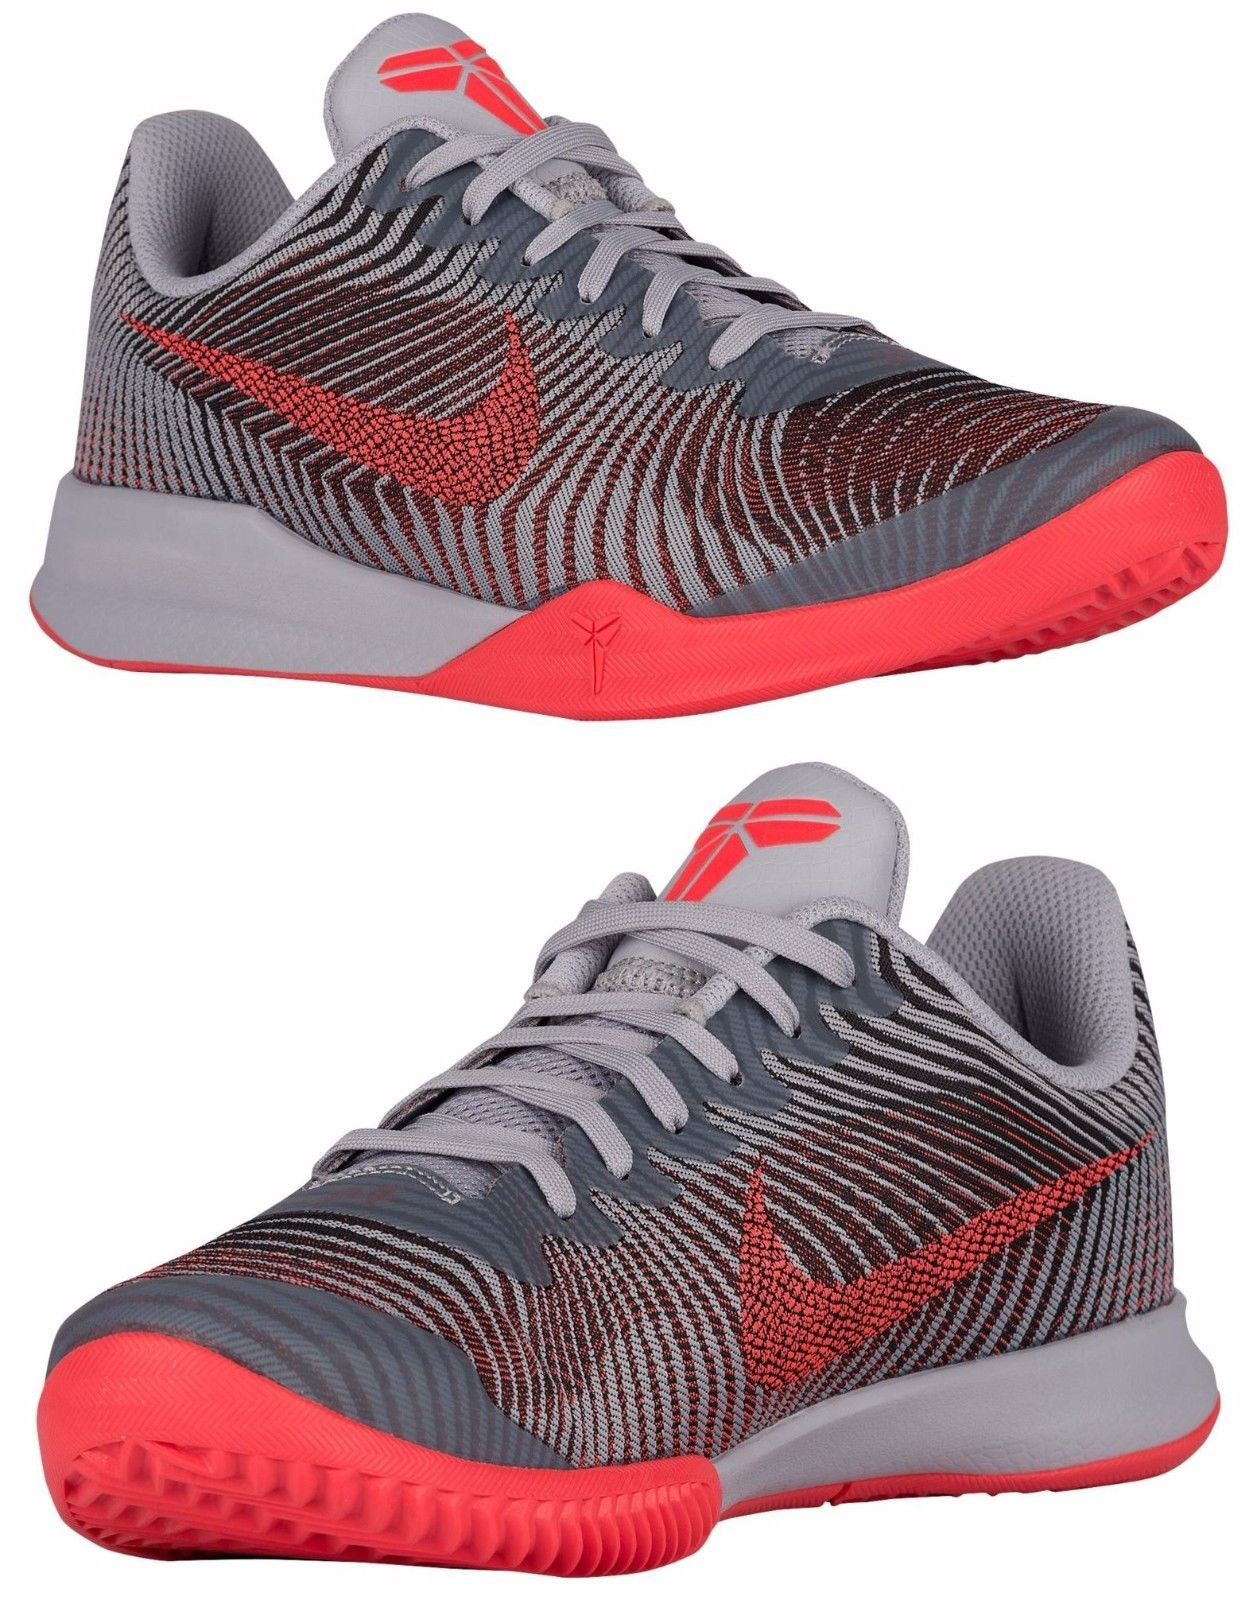 2a800c0a6dba NIKE KOBE MENTALITY 2 TRAINING MEN s M MESH WOLF GREY - CRIMSON - BLACK NEW  SIZE